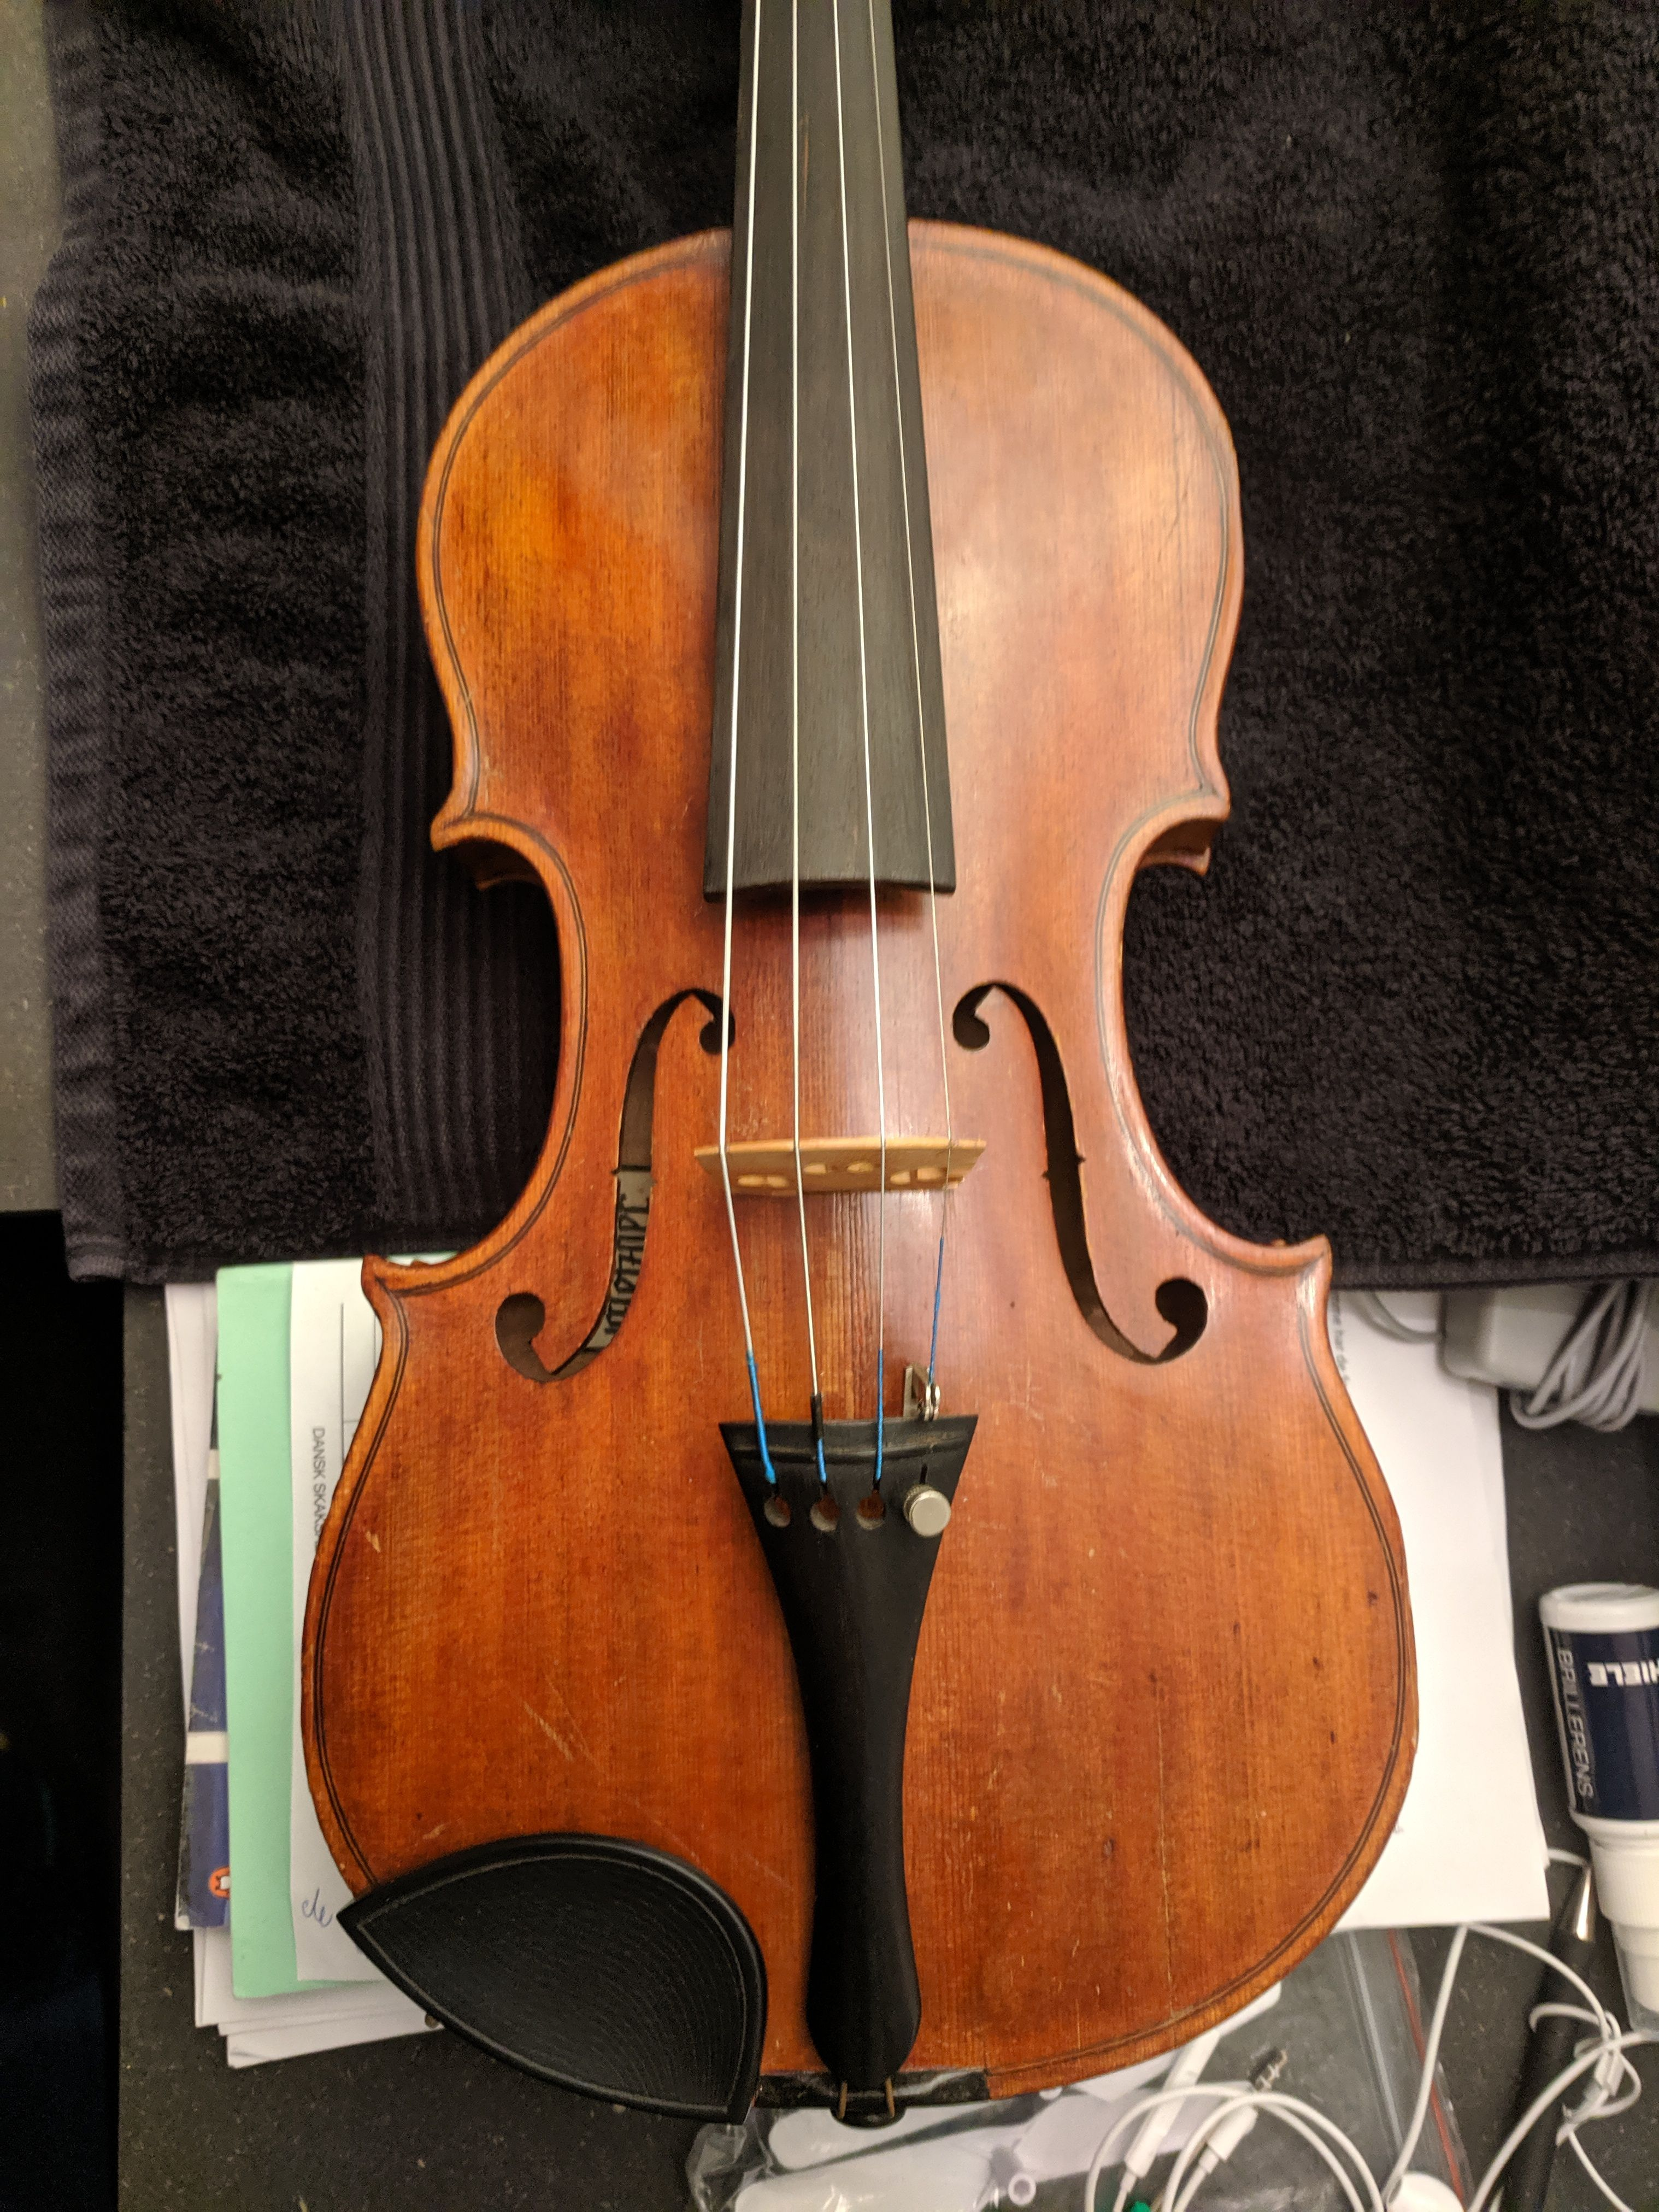 Can anyone tell me anything about this instrument violin